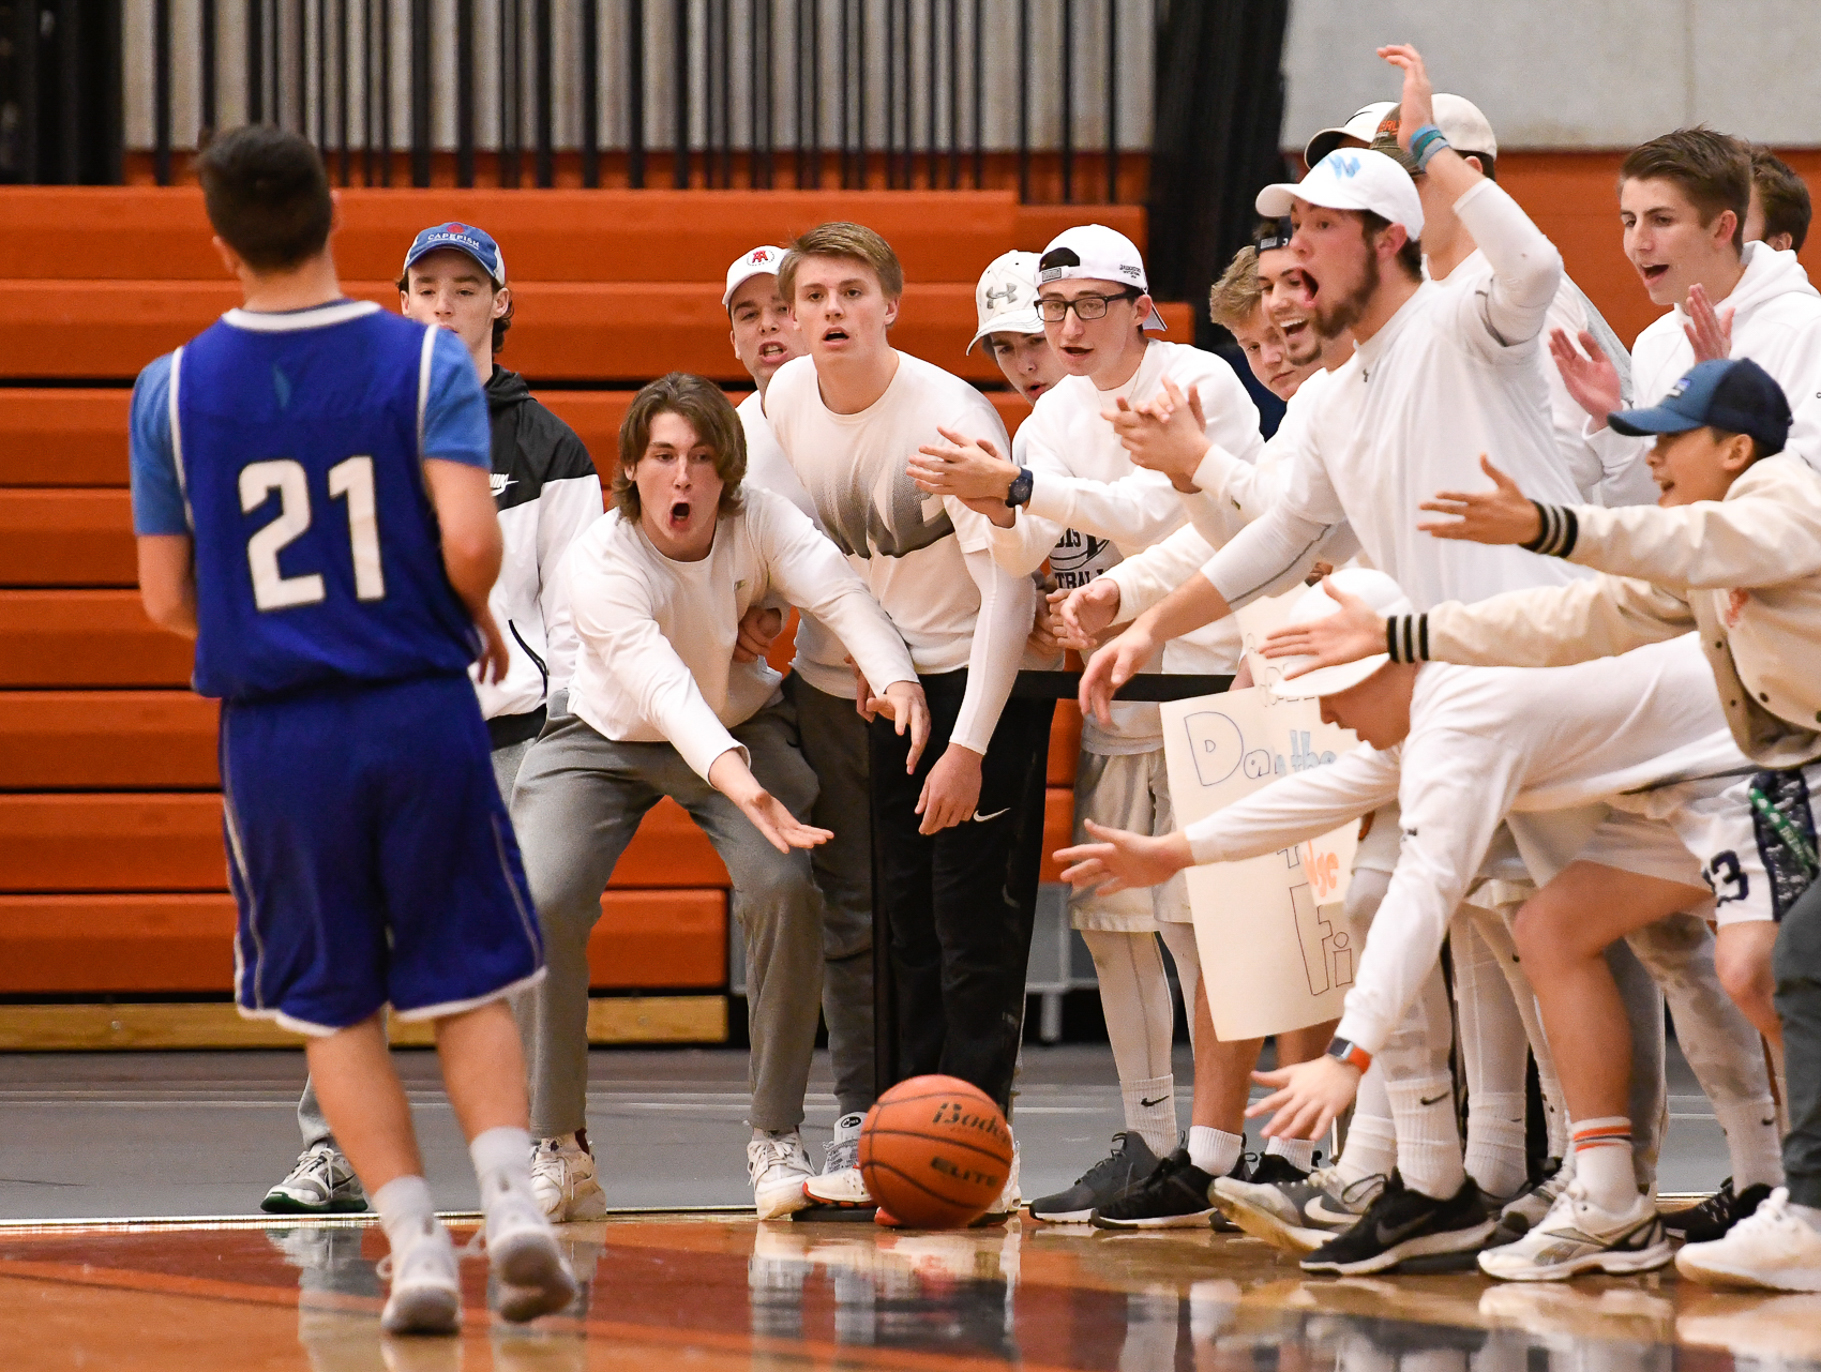 Beverly fans react to an out of bounds ball being chased by Justin Roberto of Danvers during their game at Beverly High School, Tuesday, Jan. 3, 2016. [Wicked Local Staff Photo / David Sokol]